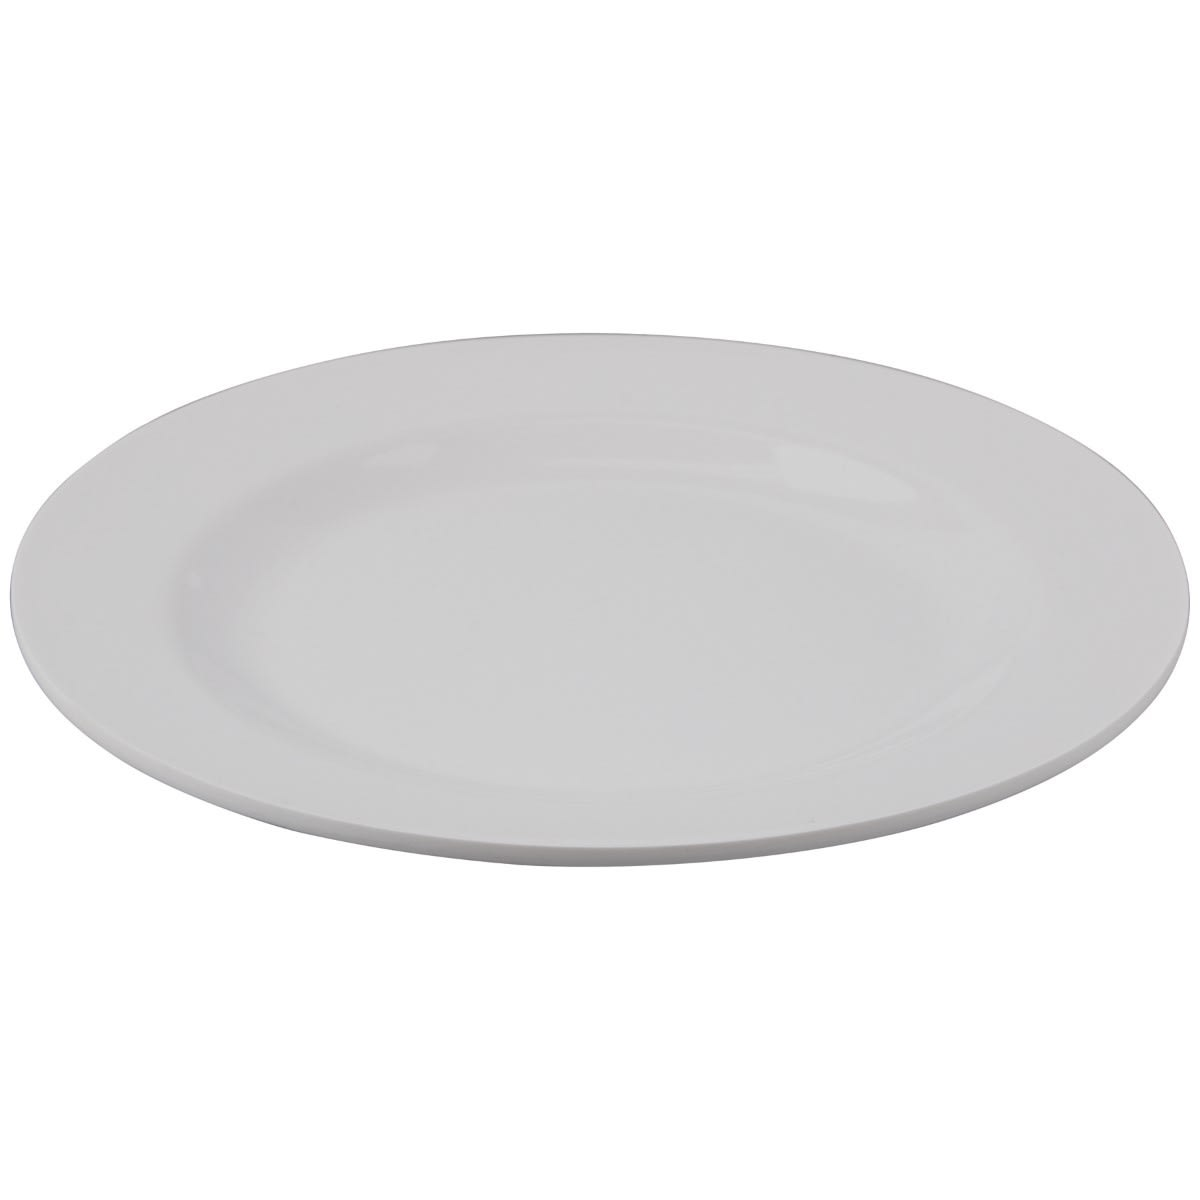 Natural Instincts Melamine Dinner Plate